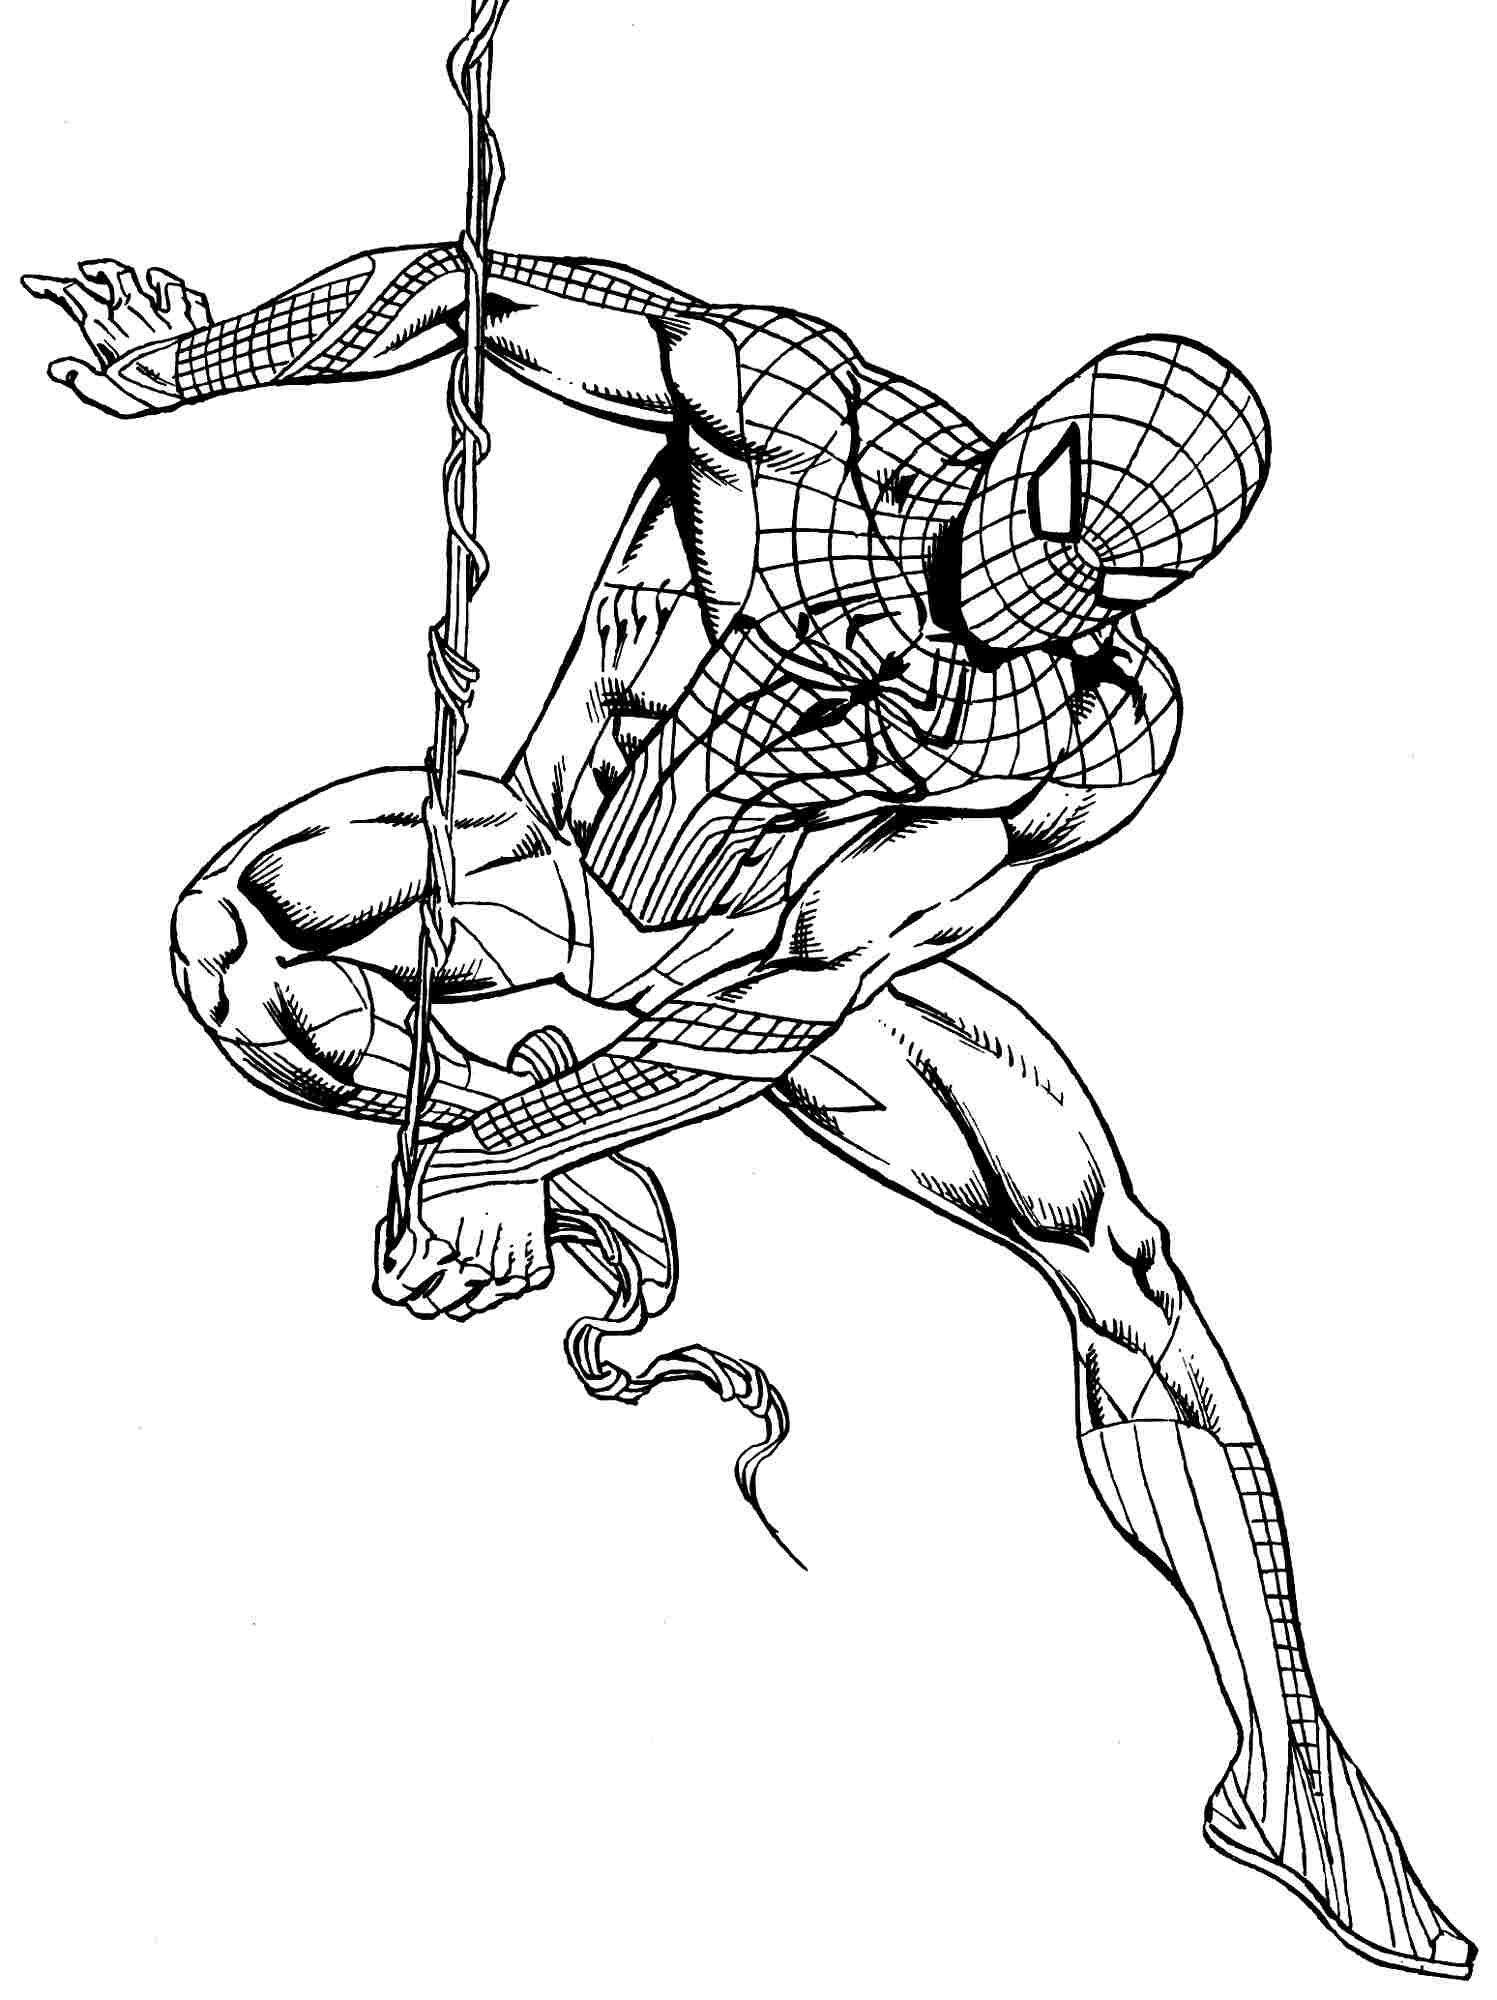 Download or Print the Free Spiderman Rope Coloring Page and